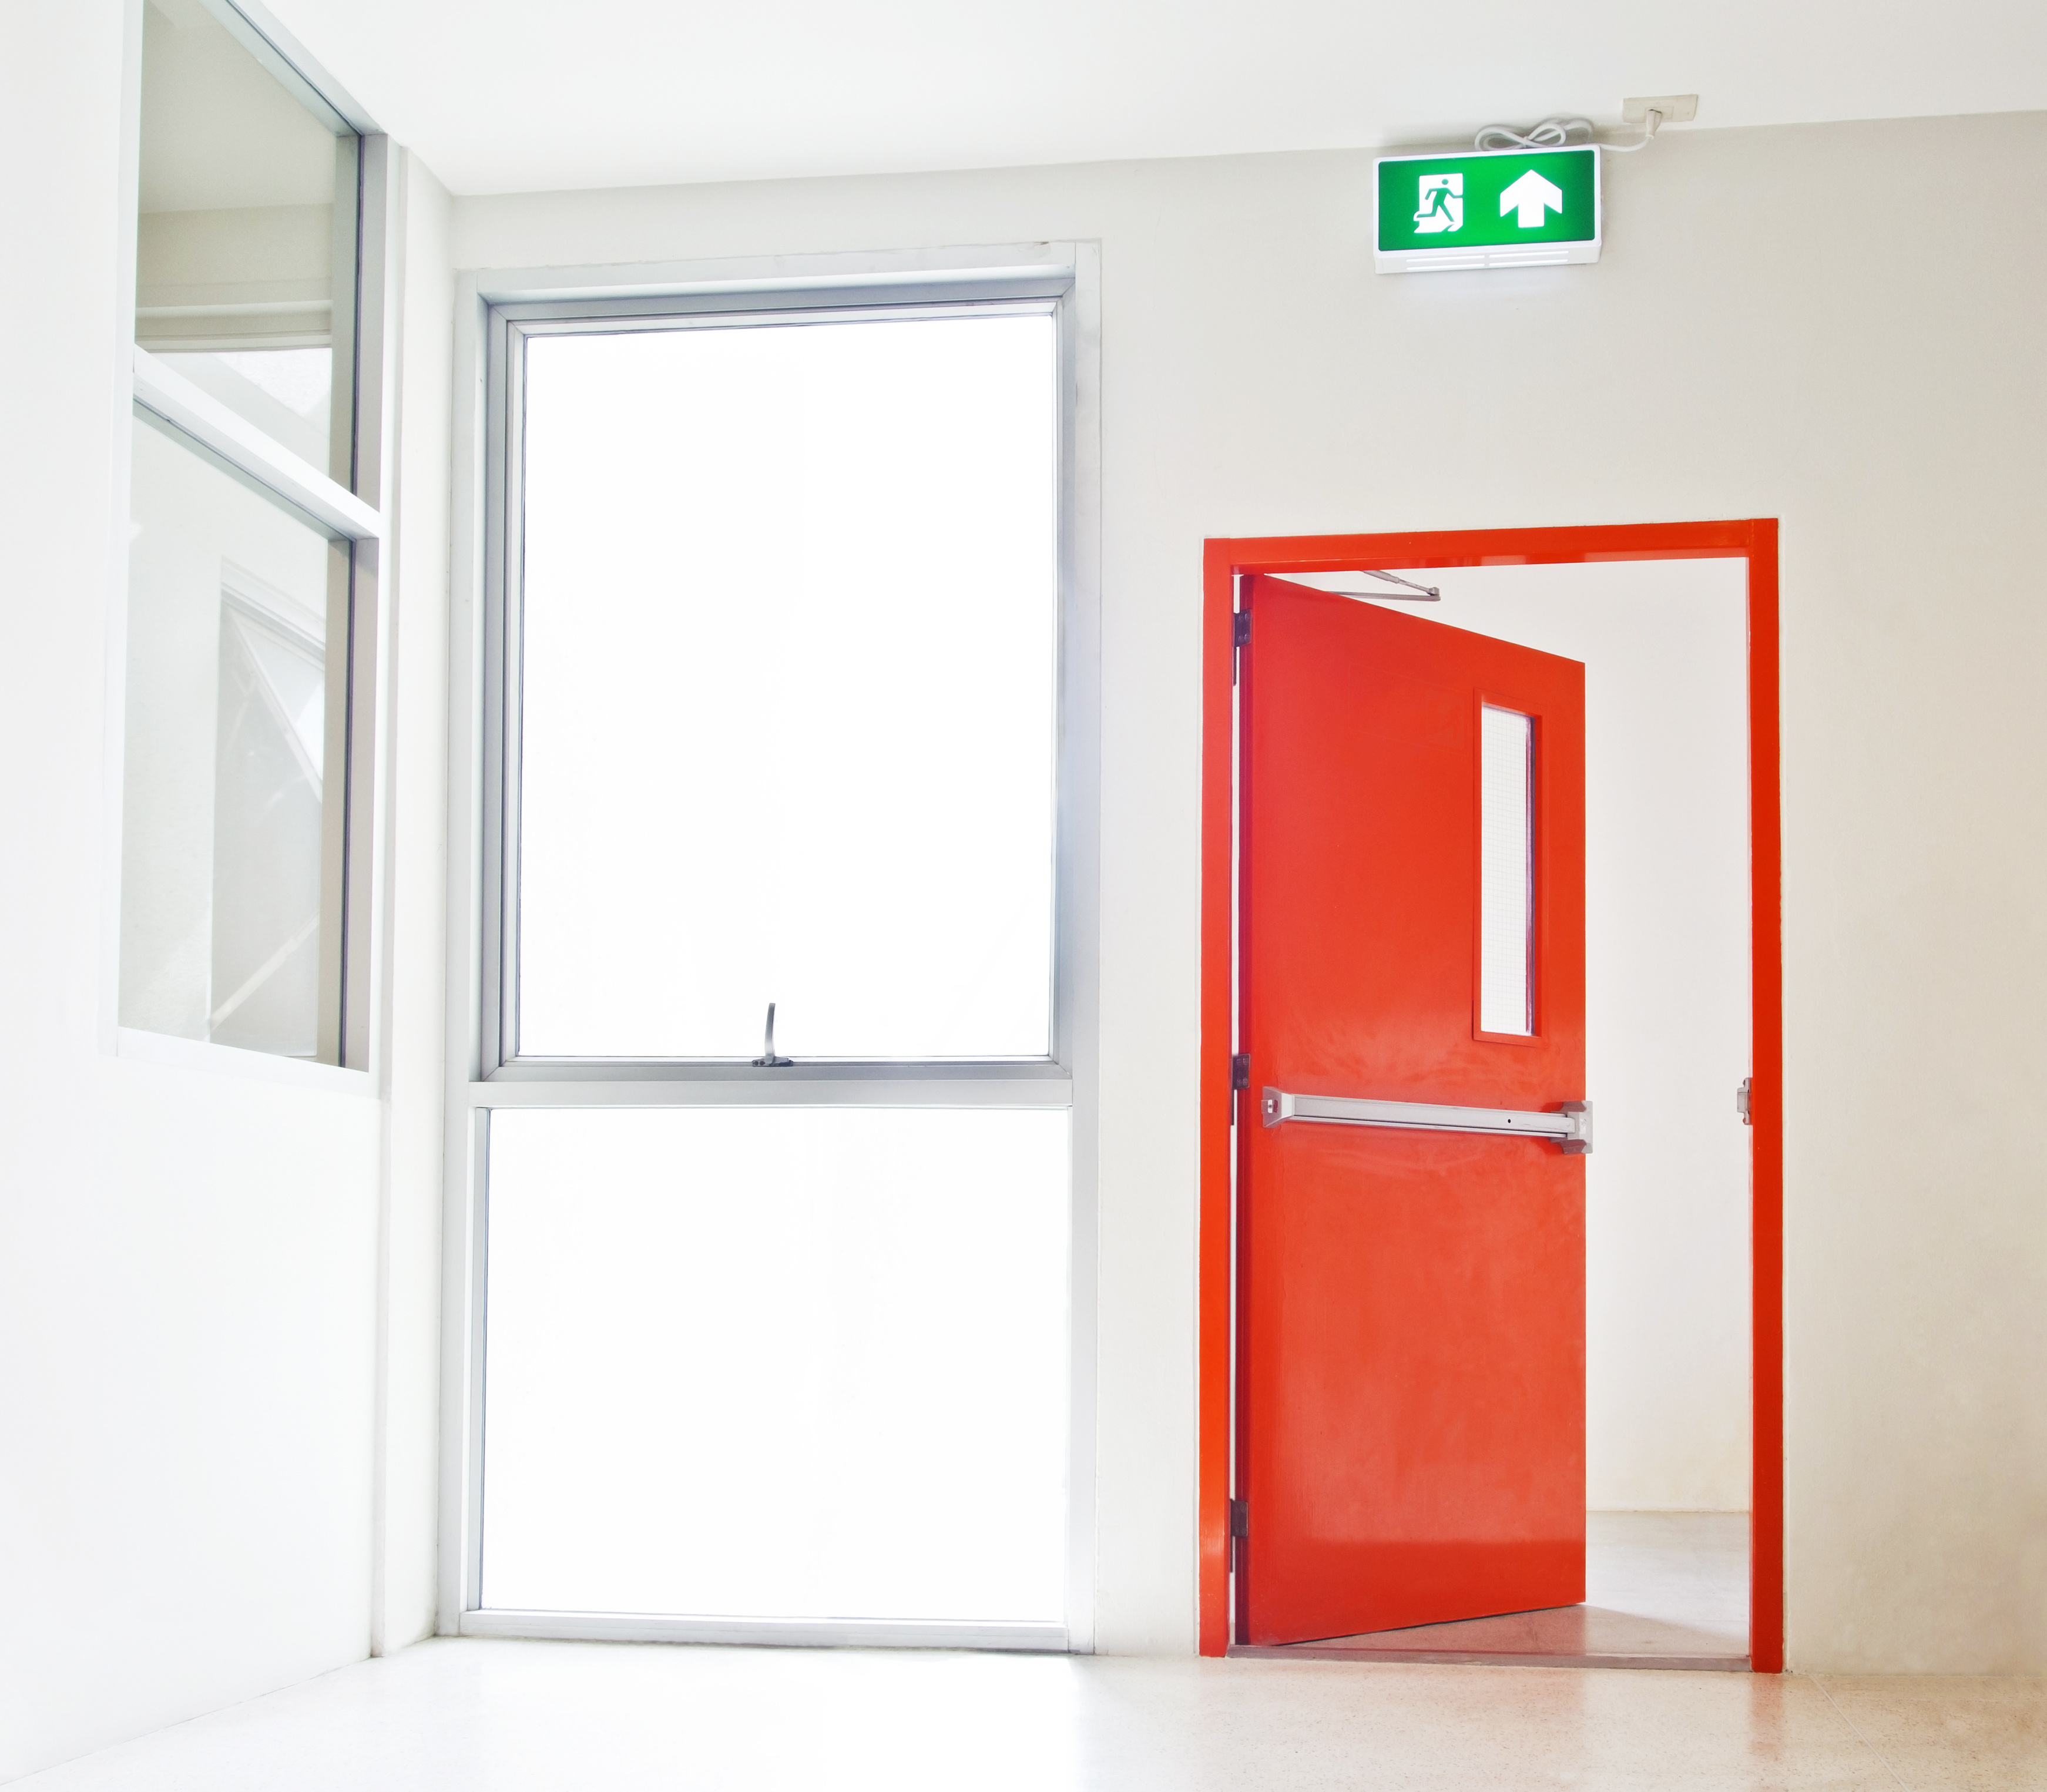 http://eurodesignsgroup.com/wp-content/uploads/2020/10/39887902-building-emergency-exit-with-exit-sign-red-door-opening-to-white.jpg